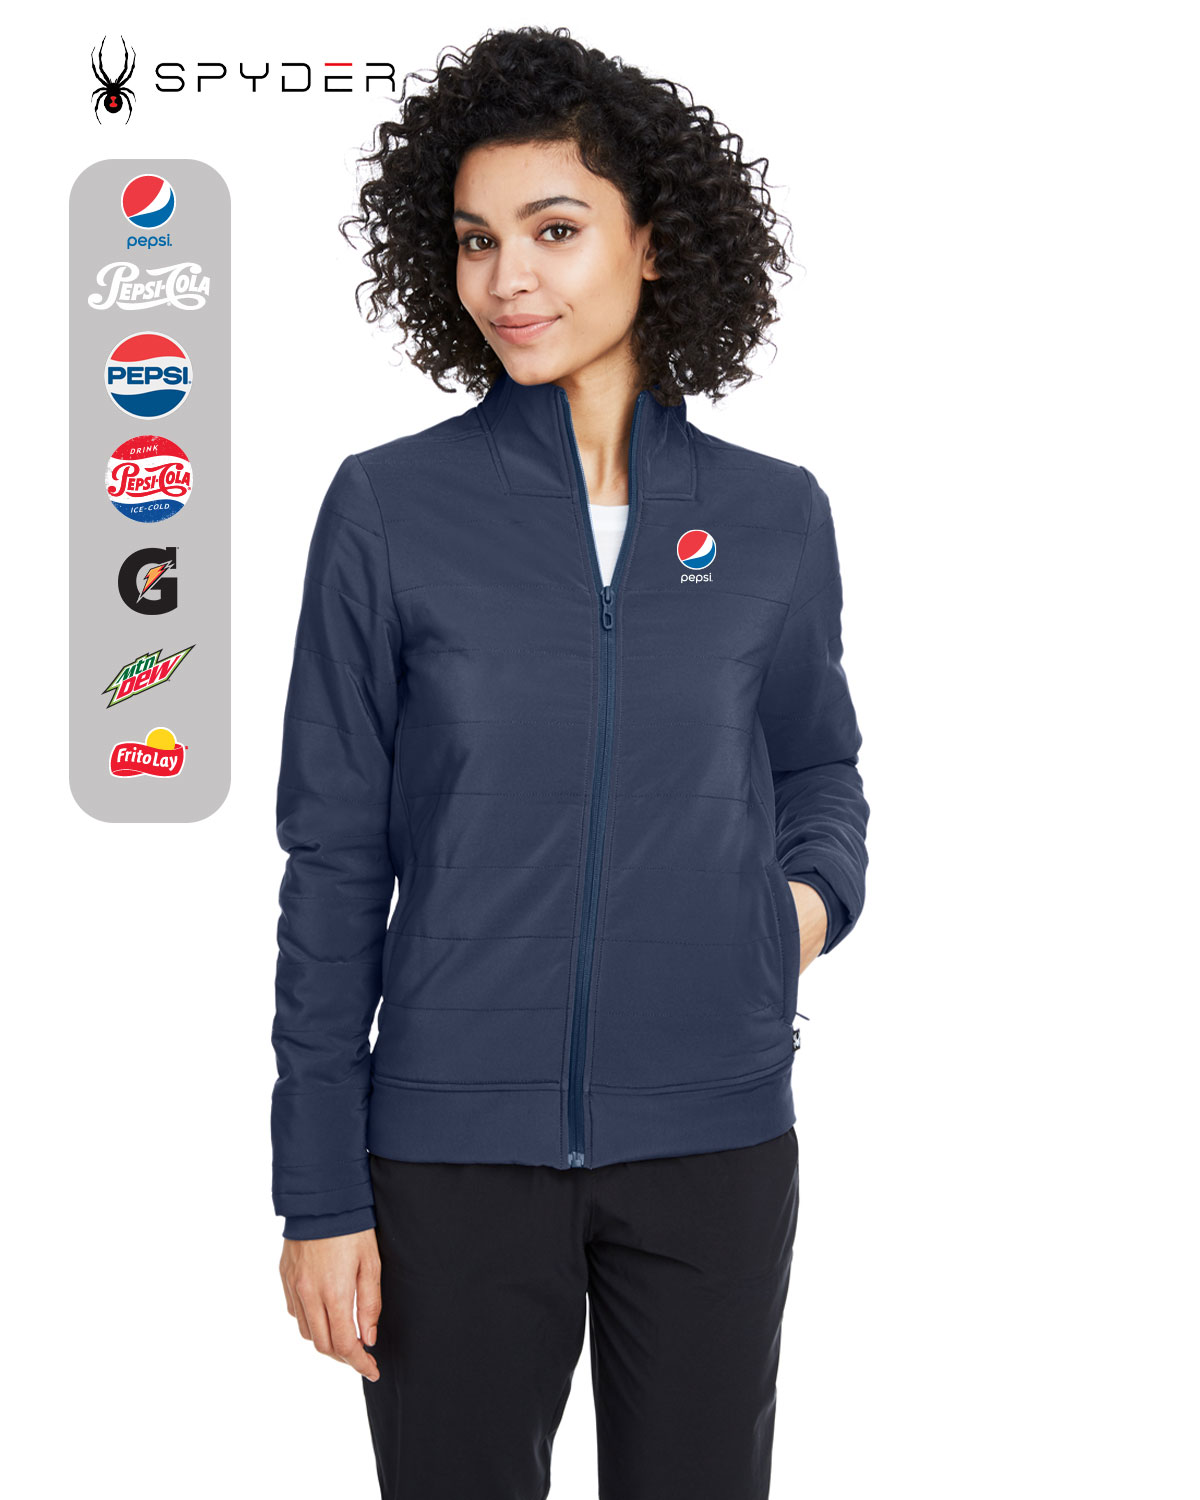 Spyder Ladies' Transit Jacket